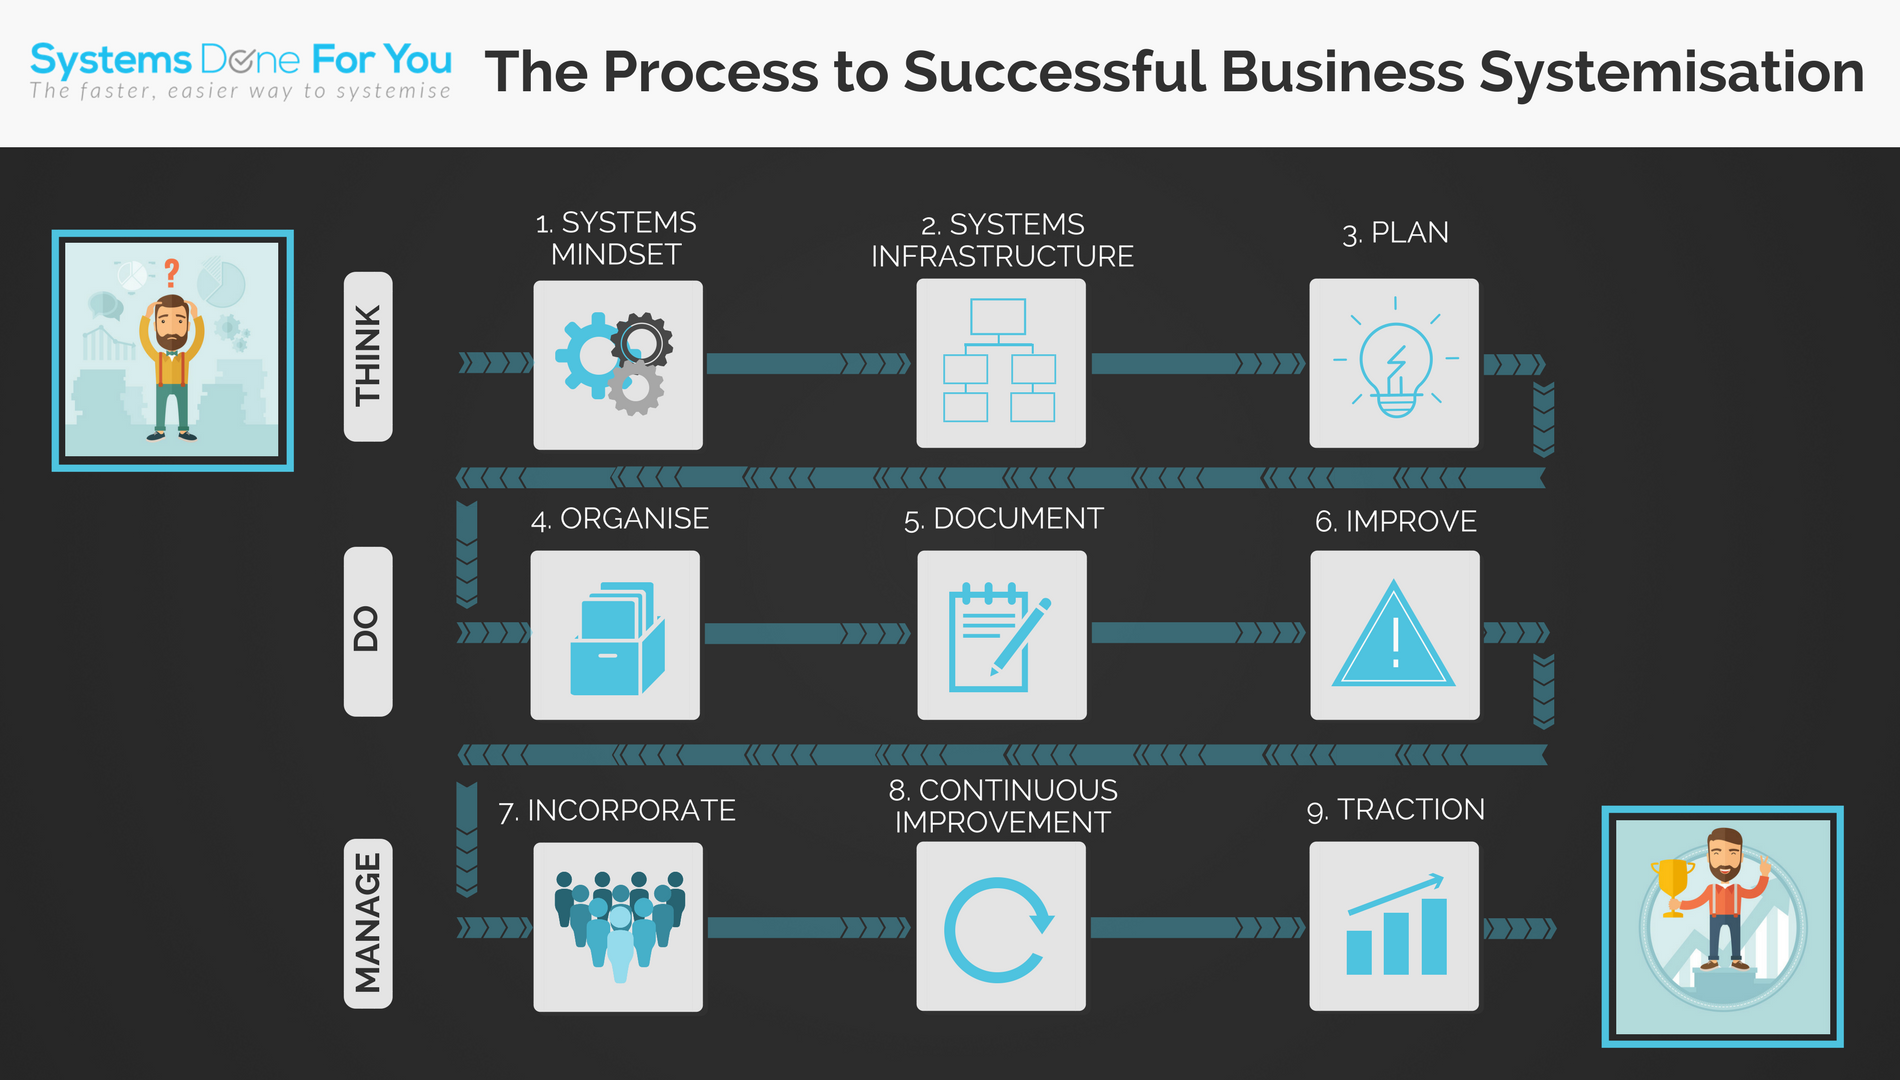 The Process to Successful Business Systemisation